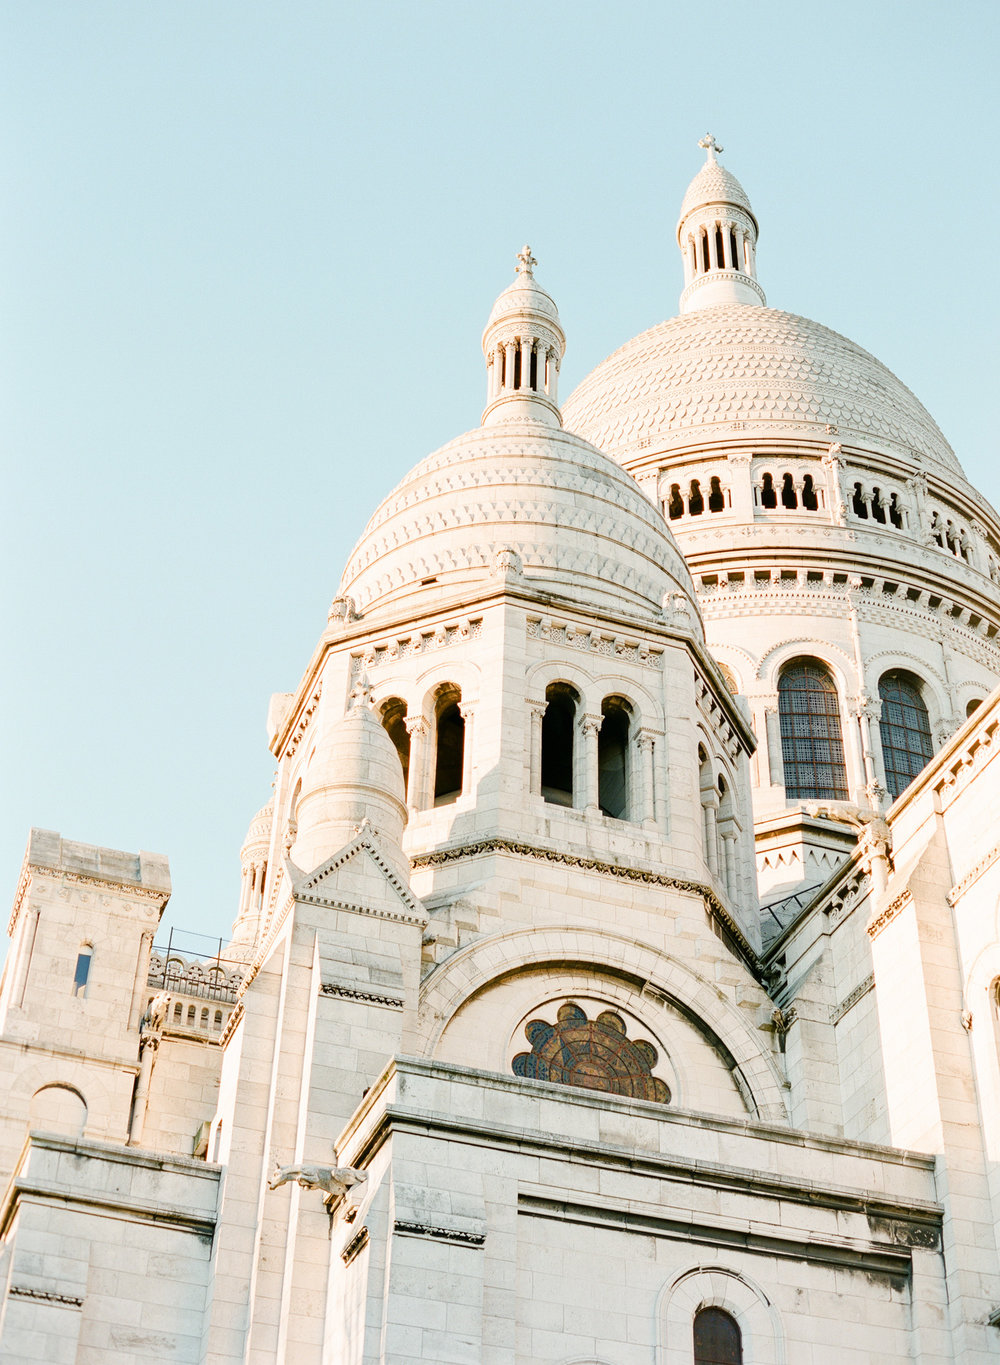 France-Travel-Advenutres-73.jpg